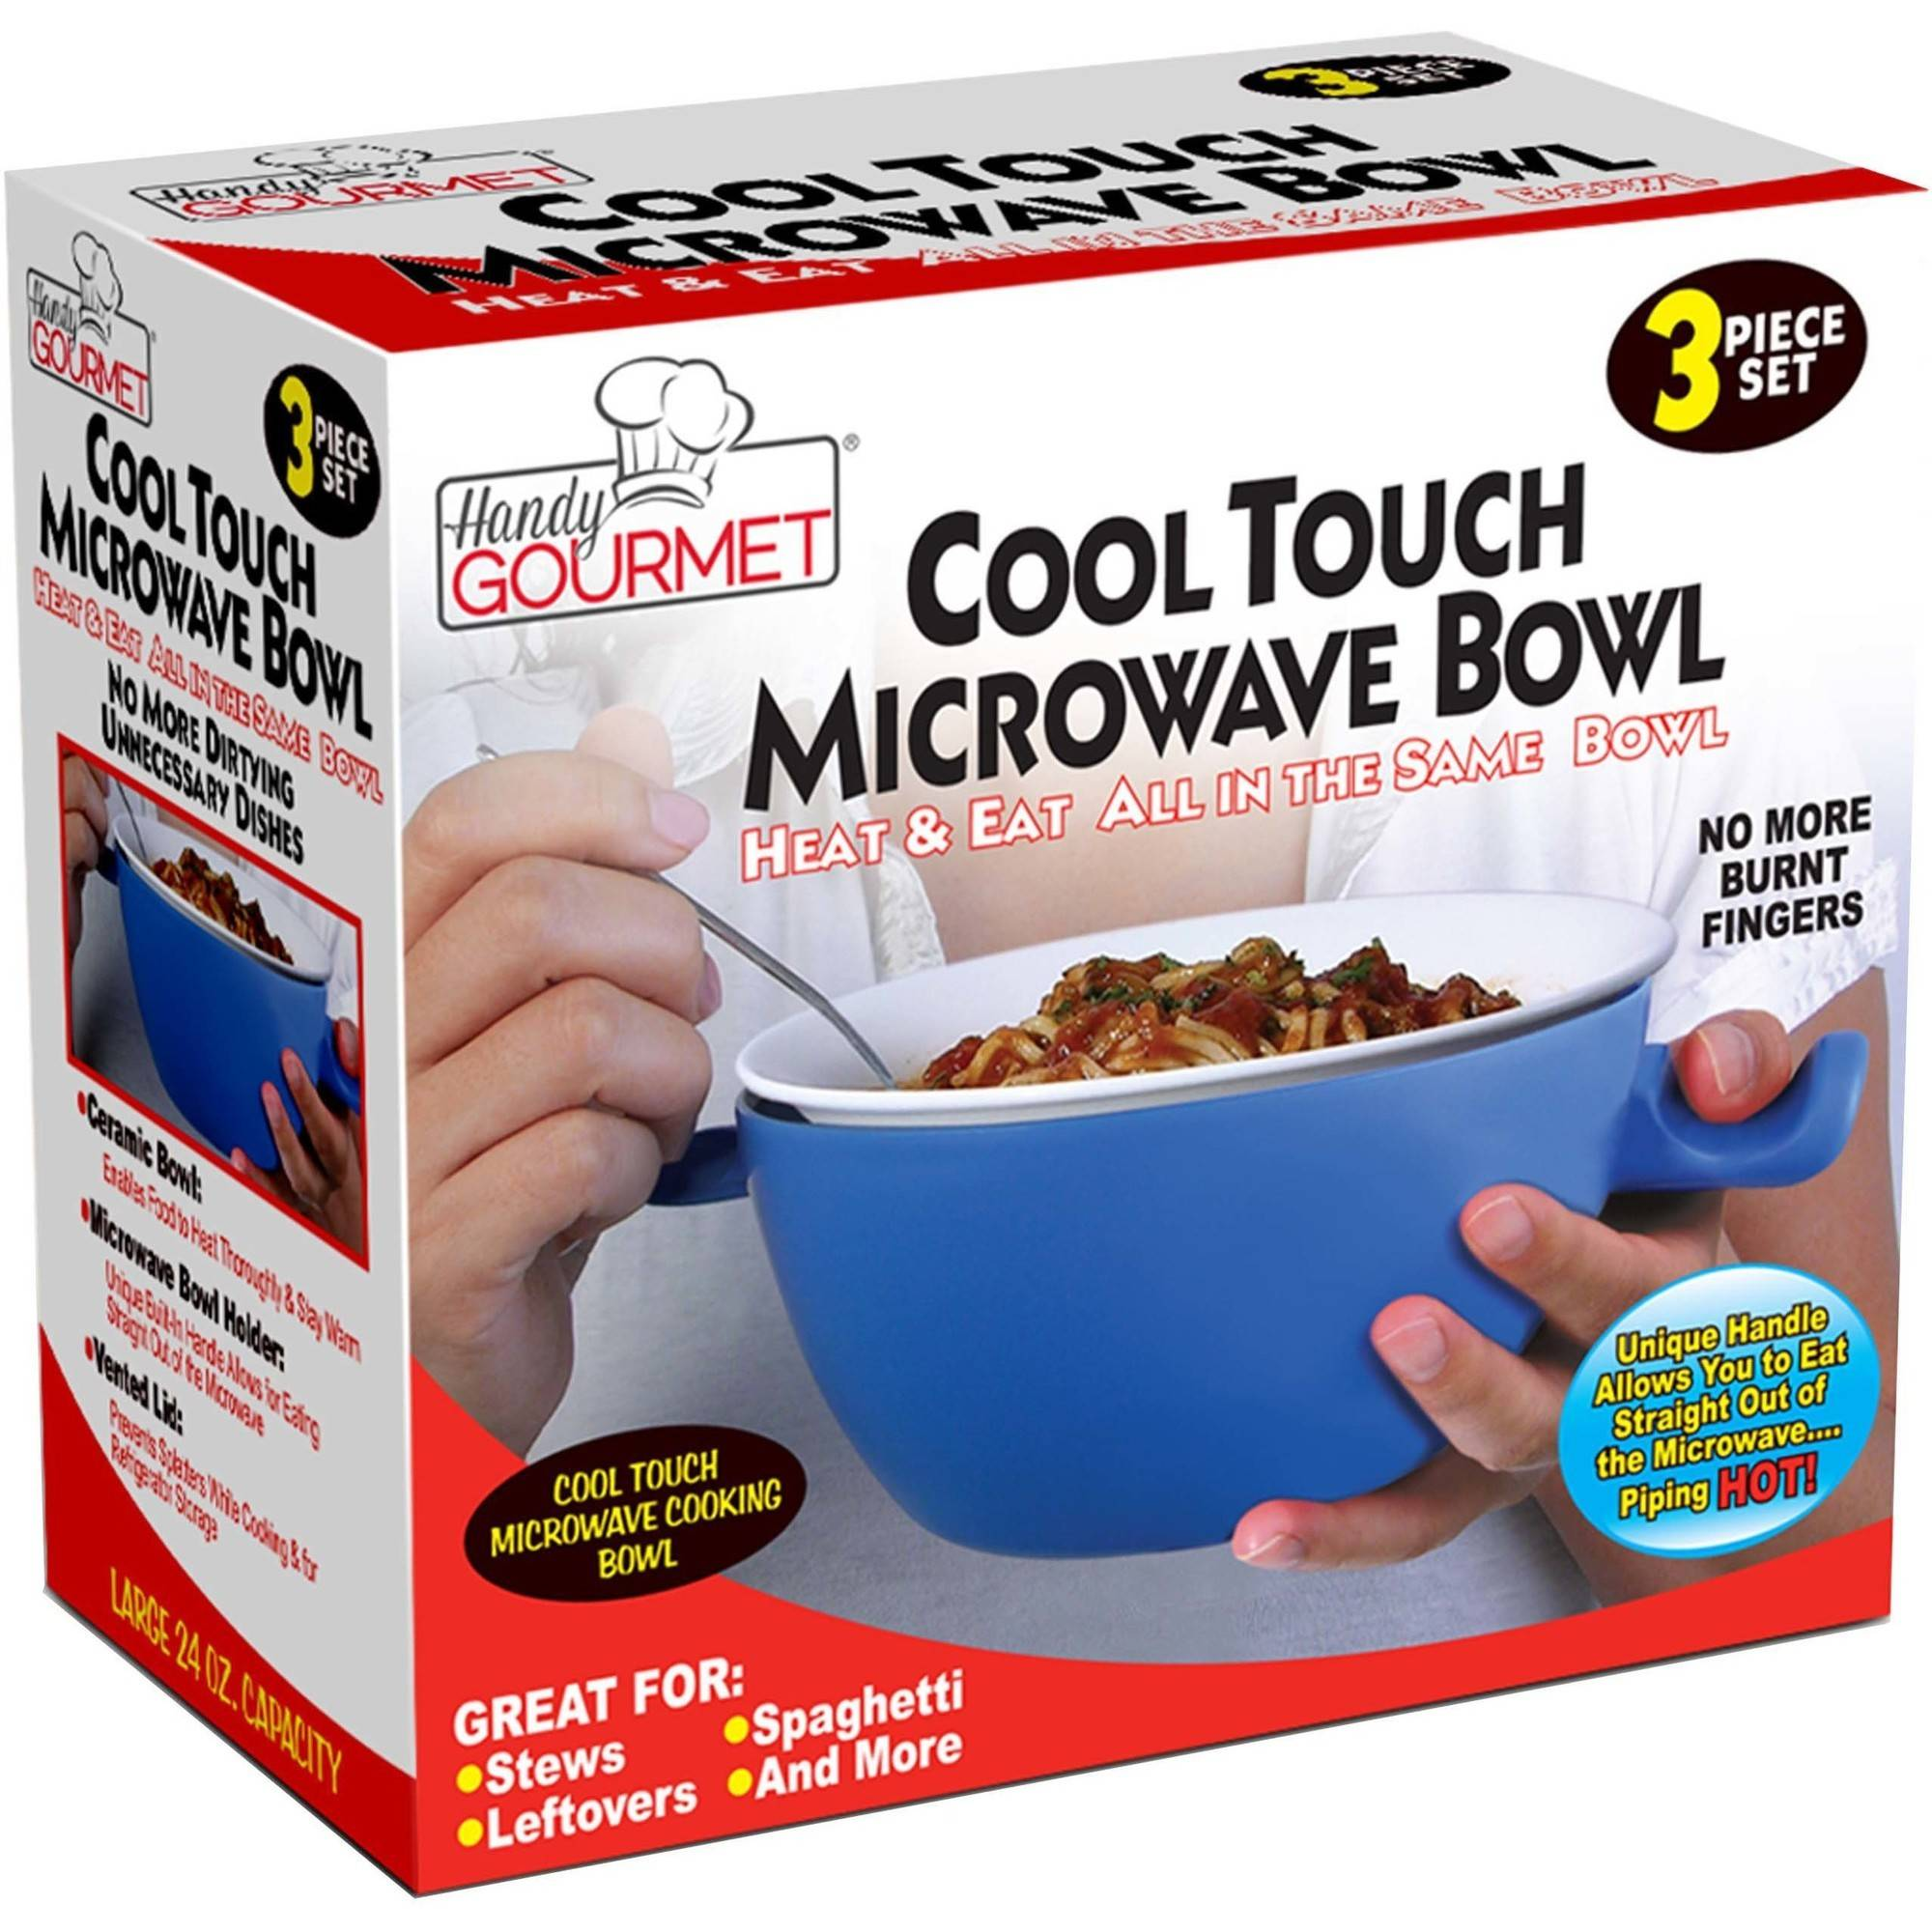 Handy Gourmet Jb5655 Cool Touch Microwave Bowl, Blue/White